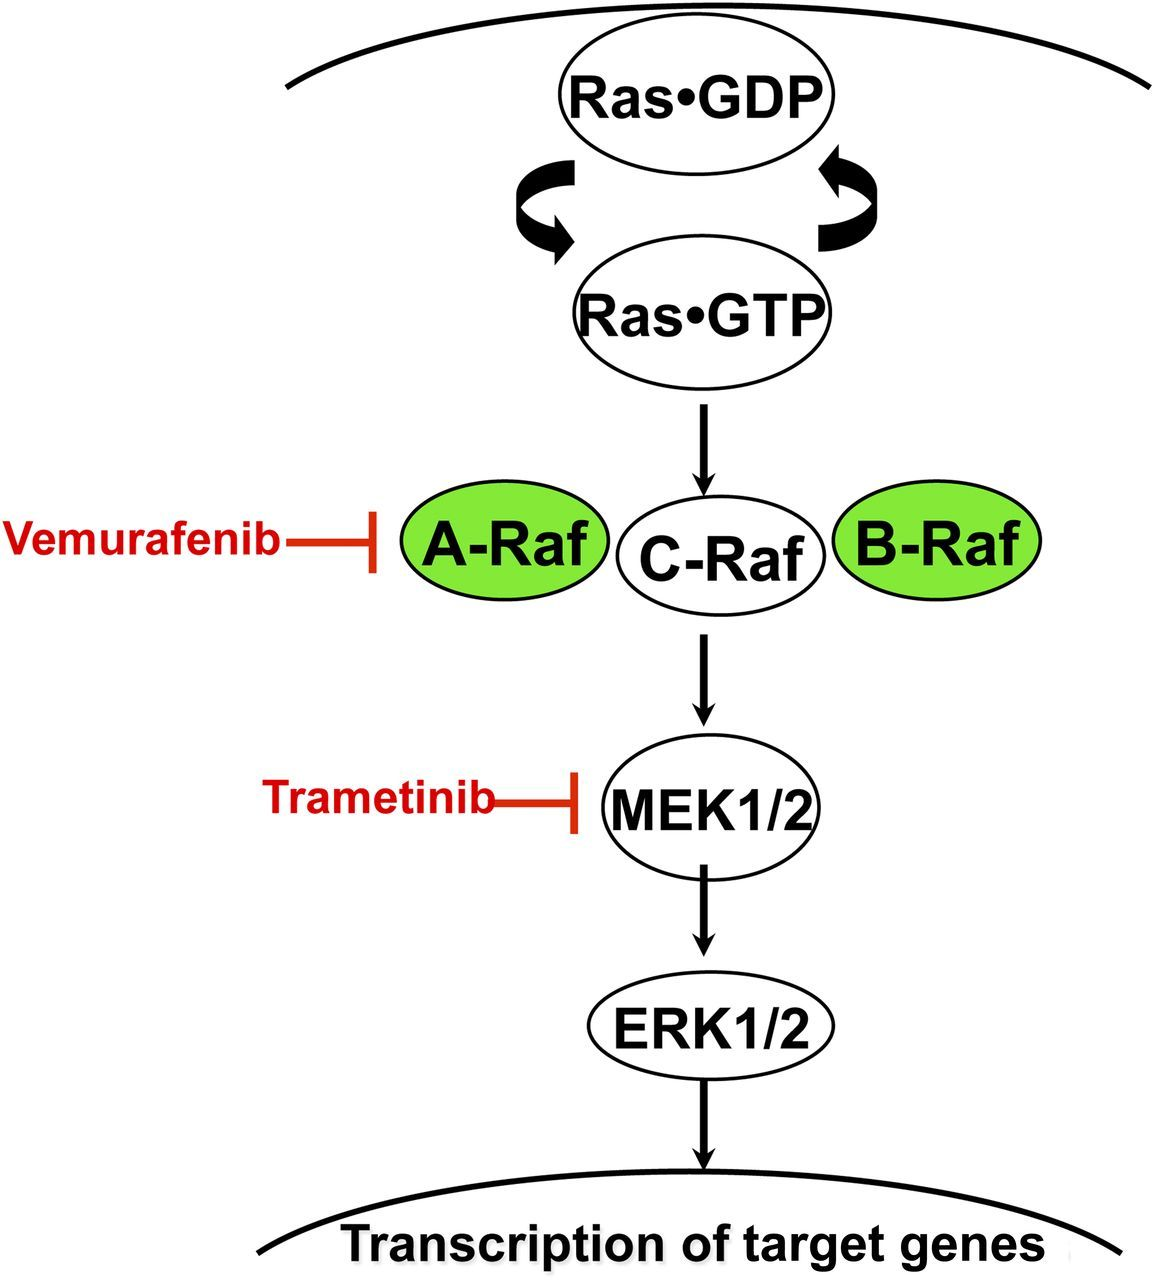 Ras Accumulates In The Active GTP-bound Conformation In